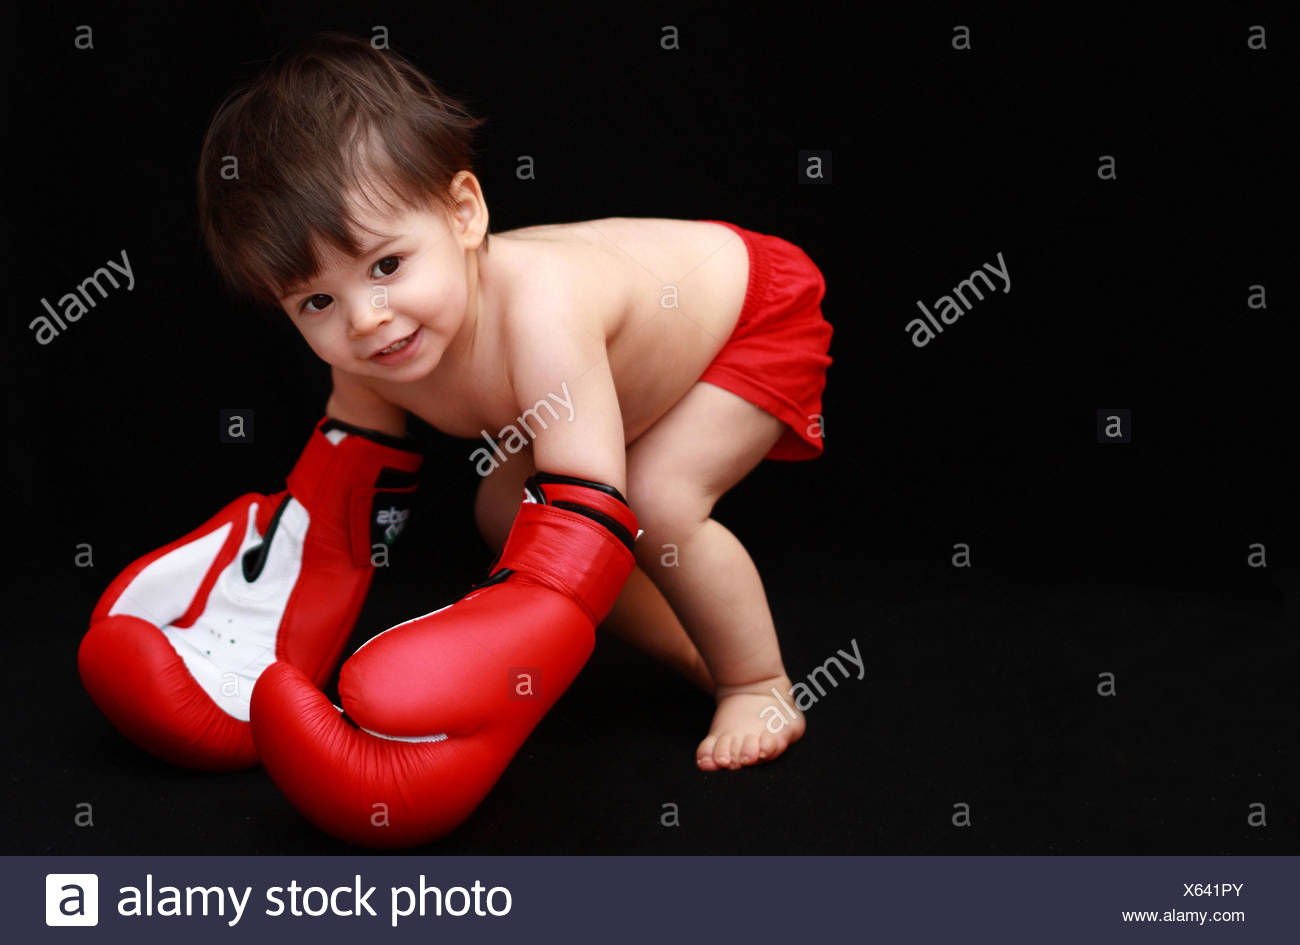 Baby boy (18-23 months) with boxing gloves - Stock Image